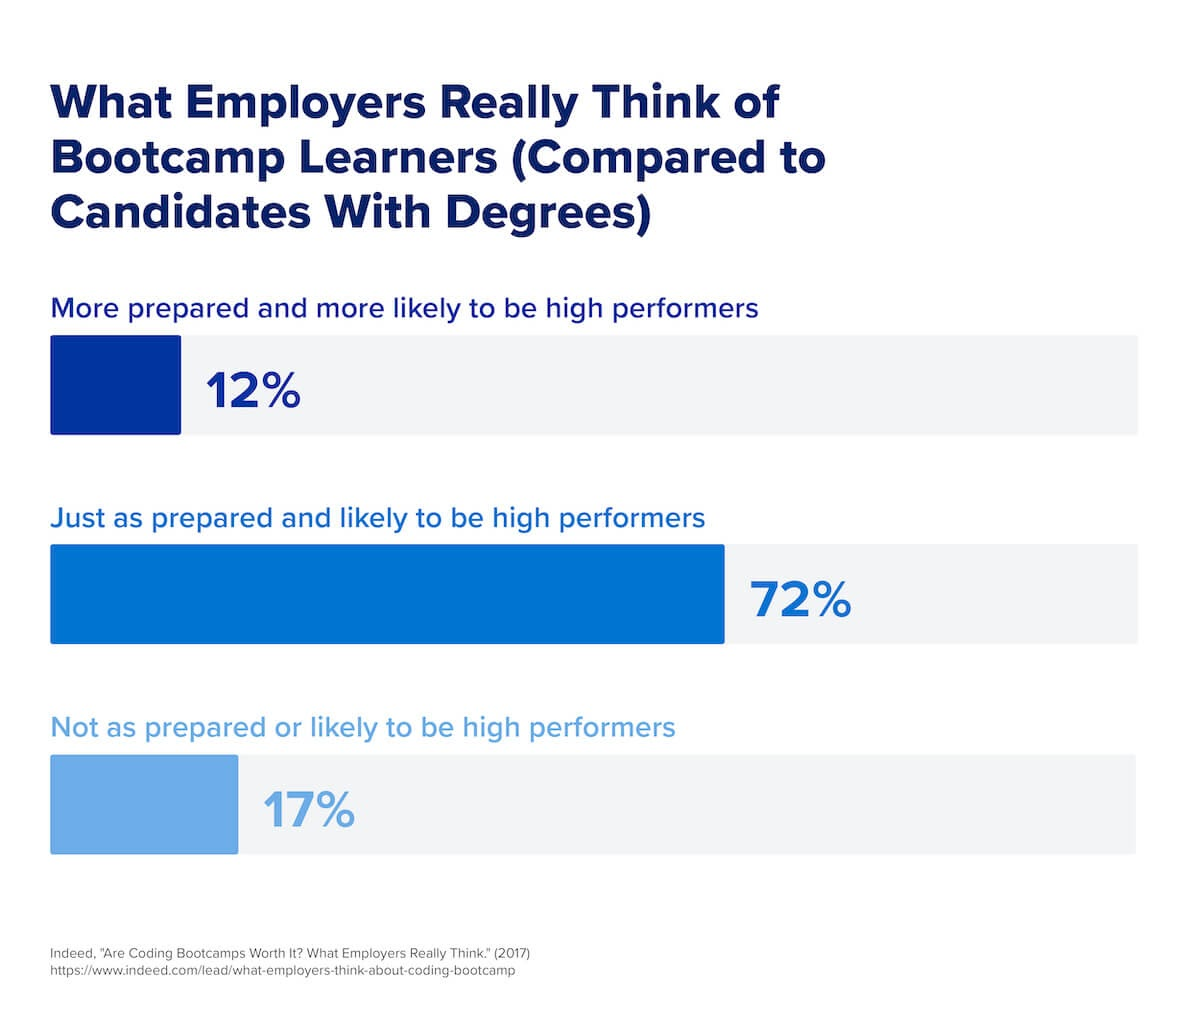 A chart that shows what employers really think of bootcamp learners.